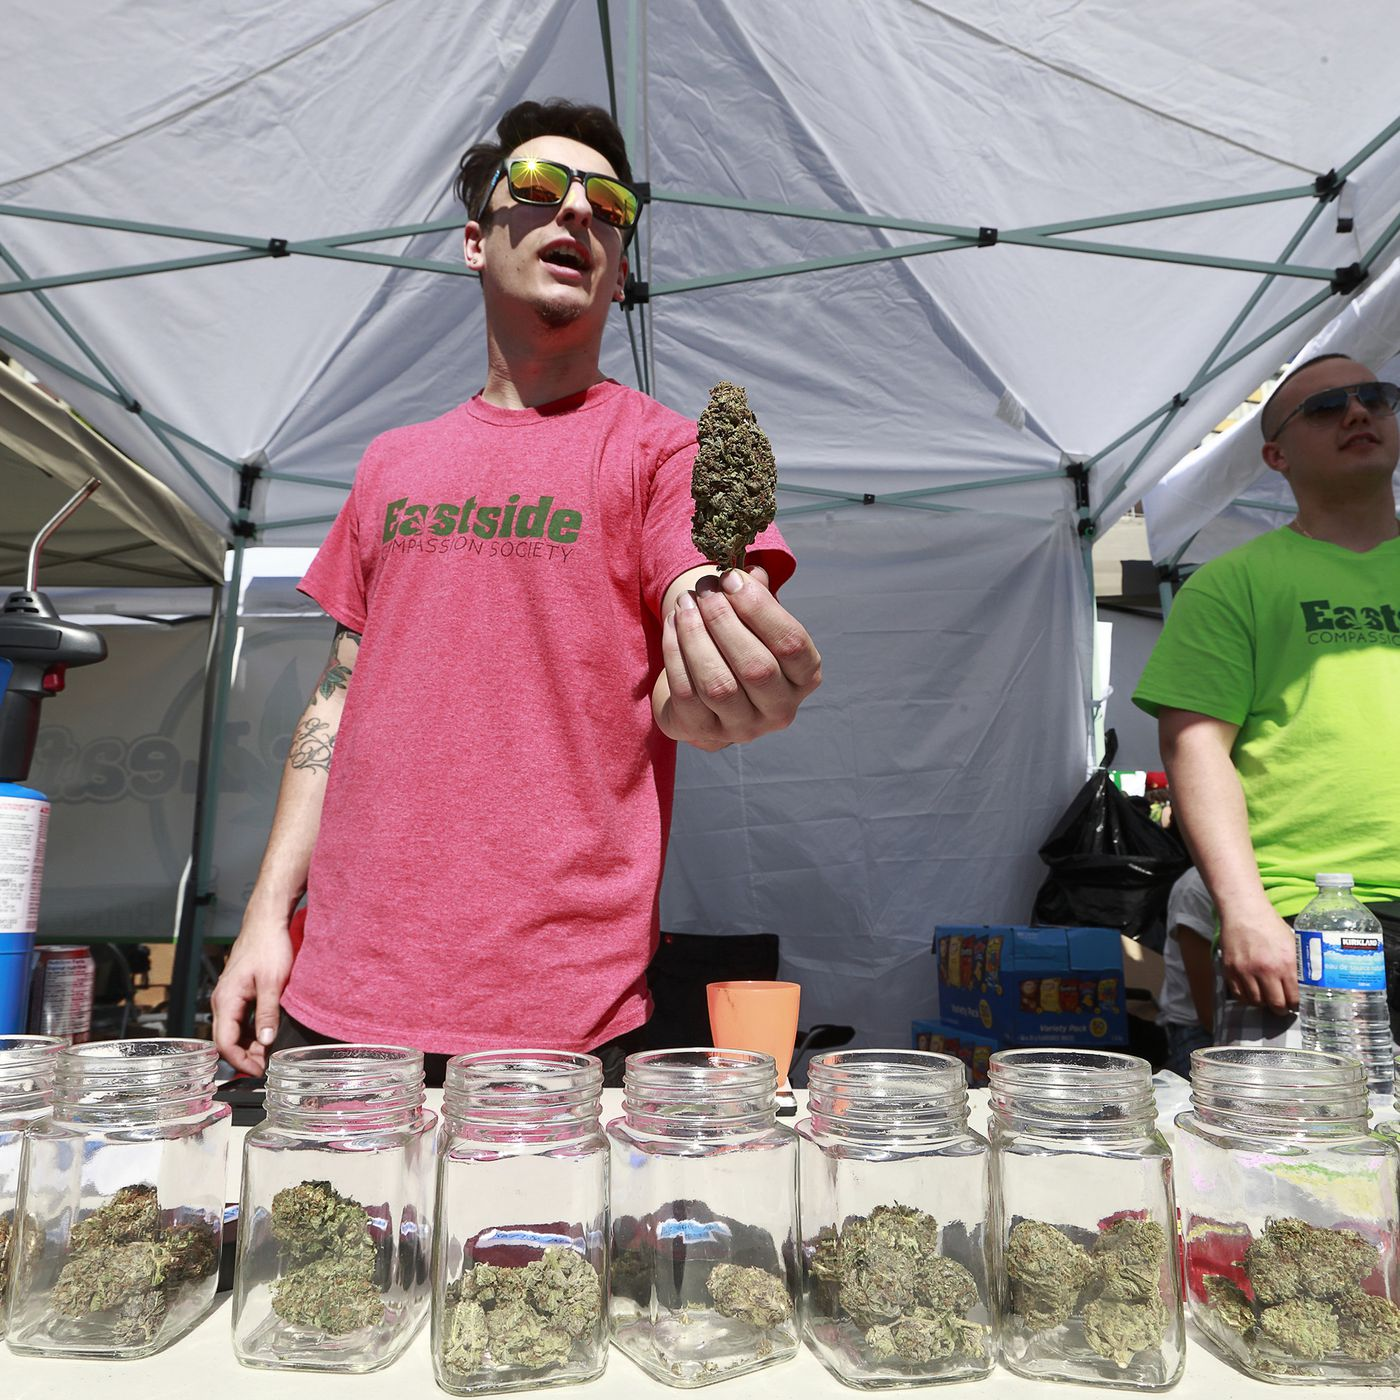 Legal pot's biggest supporter and its strongest critic have joined